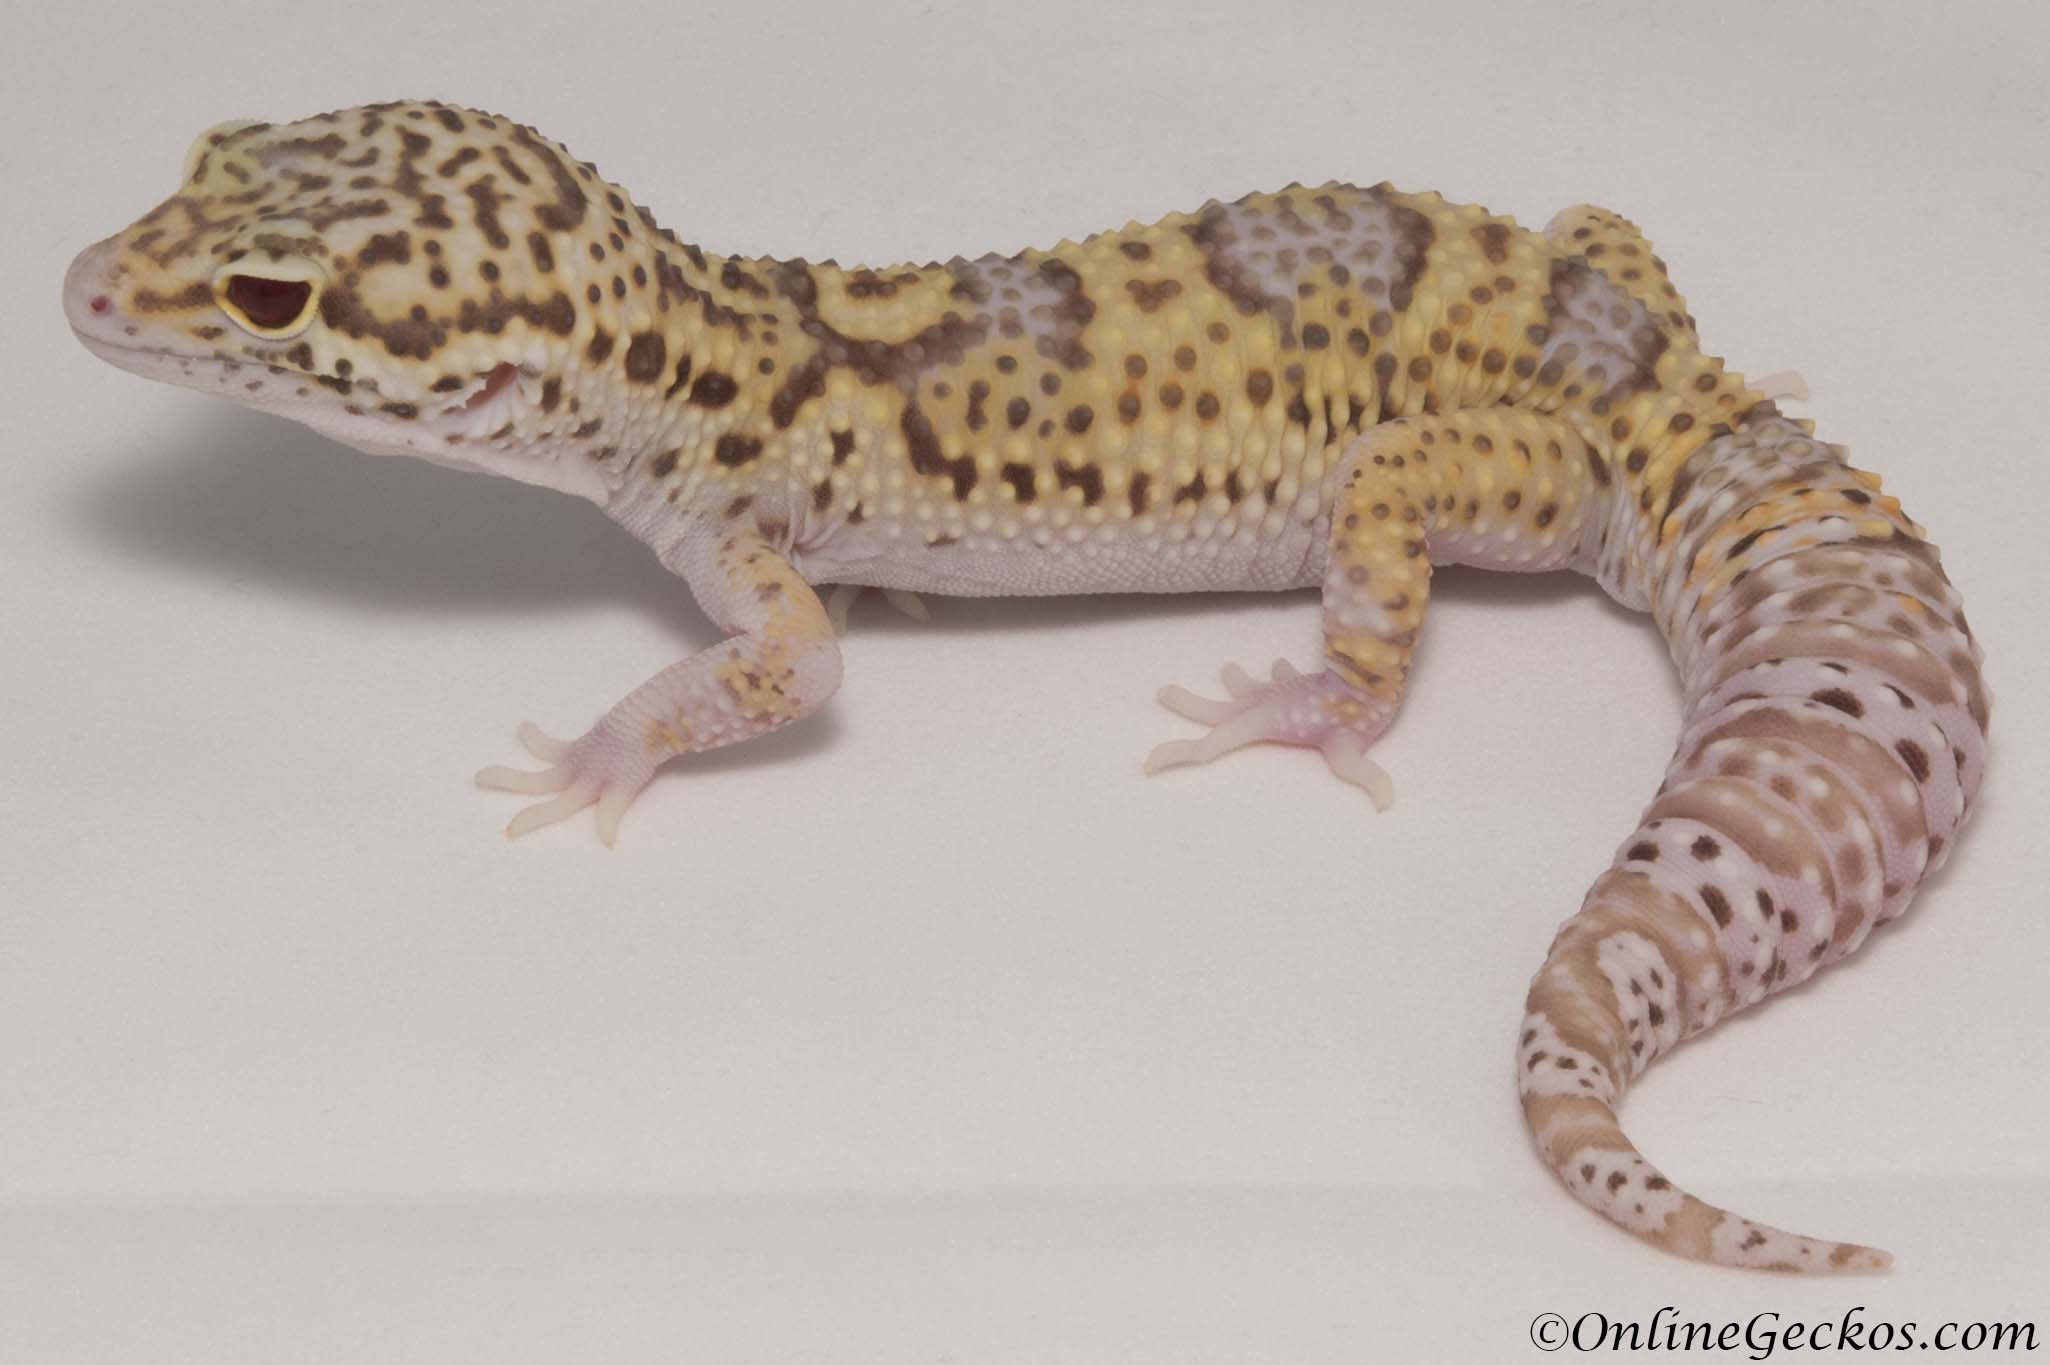 Gecko Time A Blog About Geckos Search Leopard Gecko Morph Special